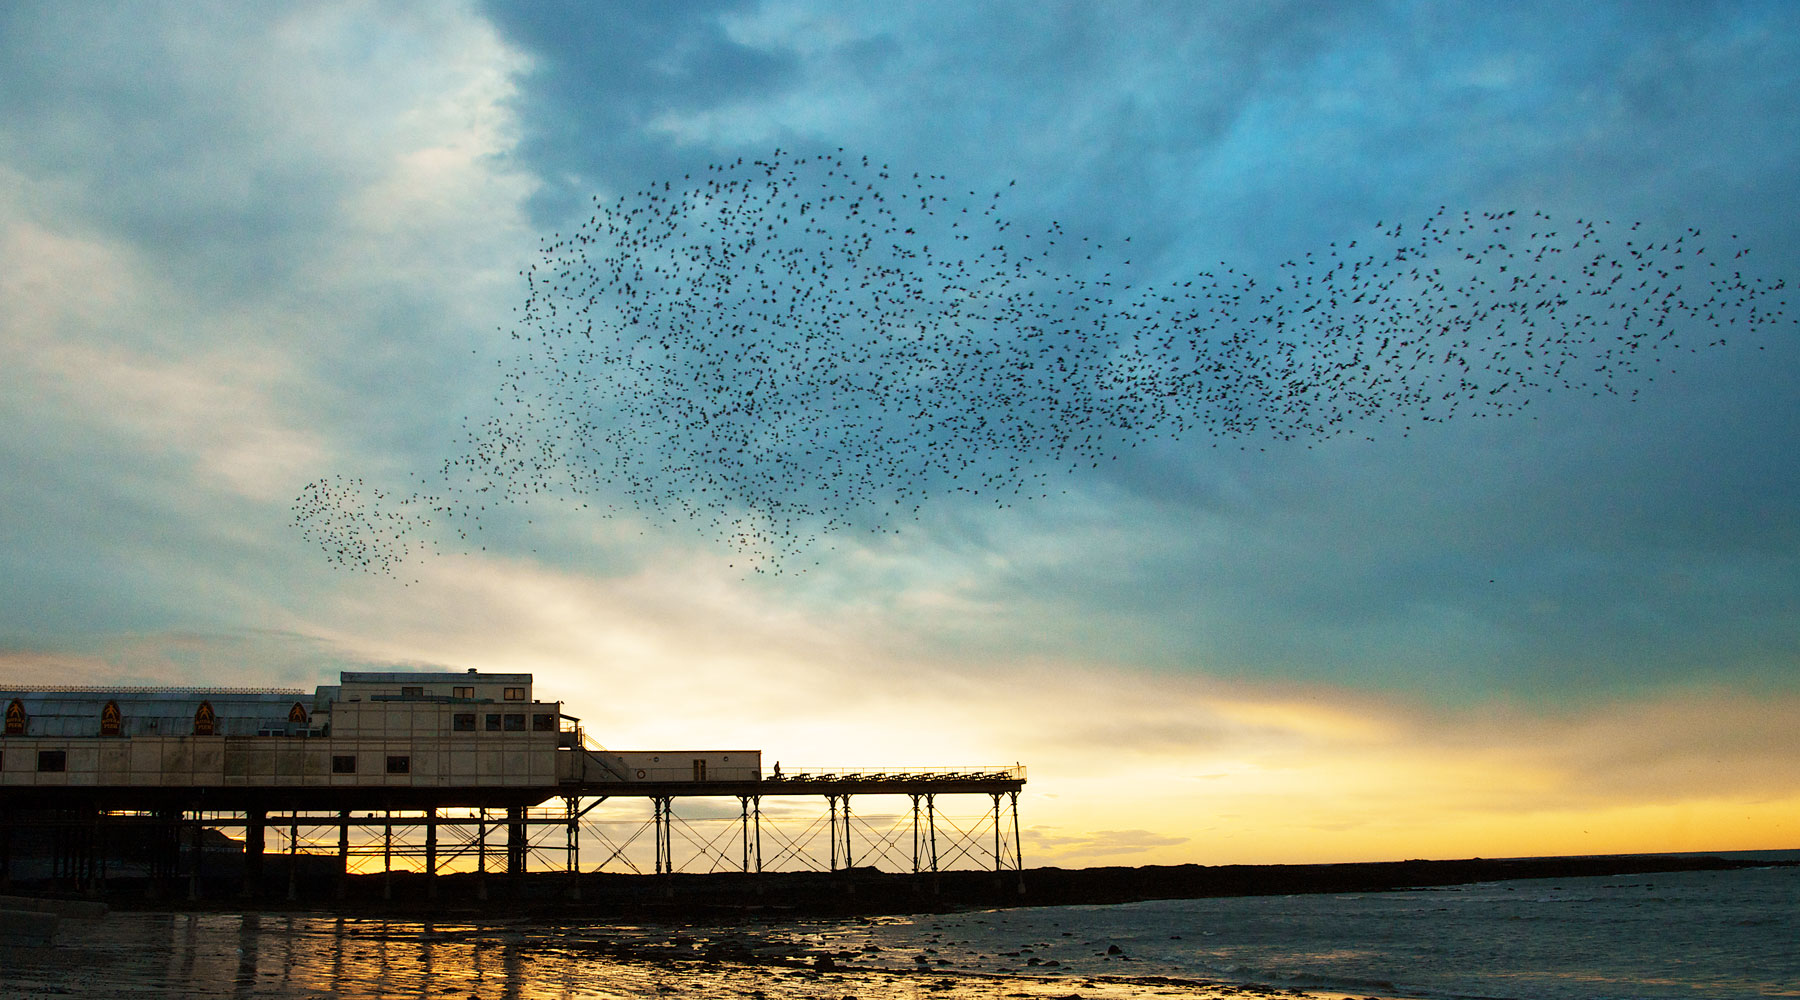 Richard Bowler | Starlings at Aberystwyth